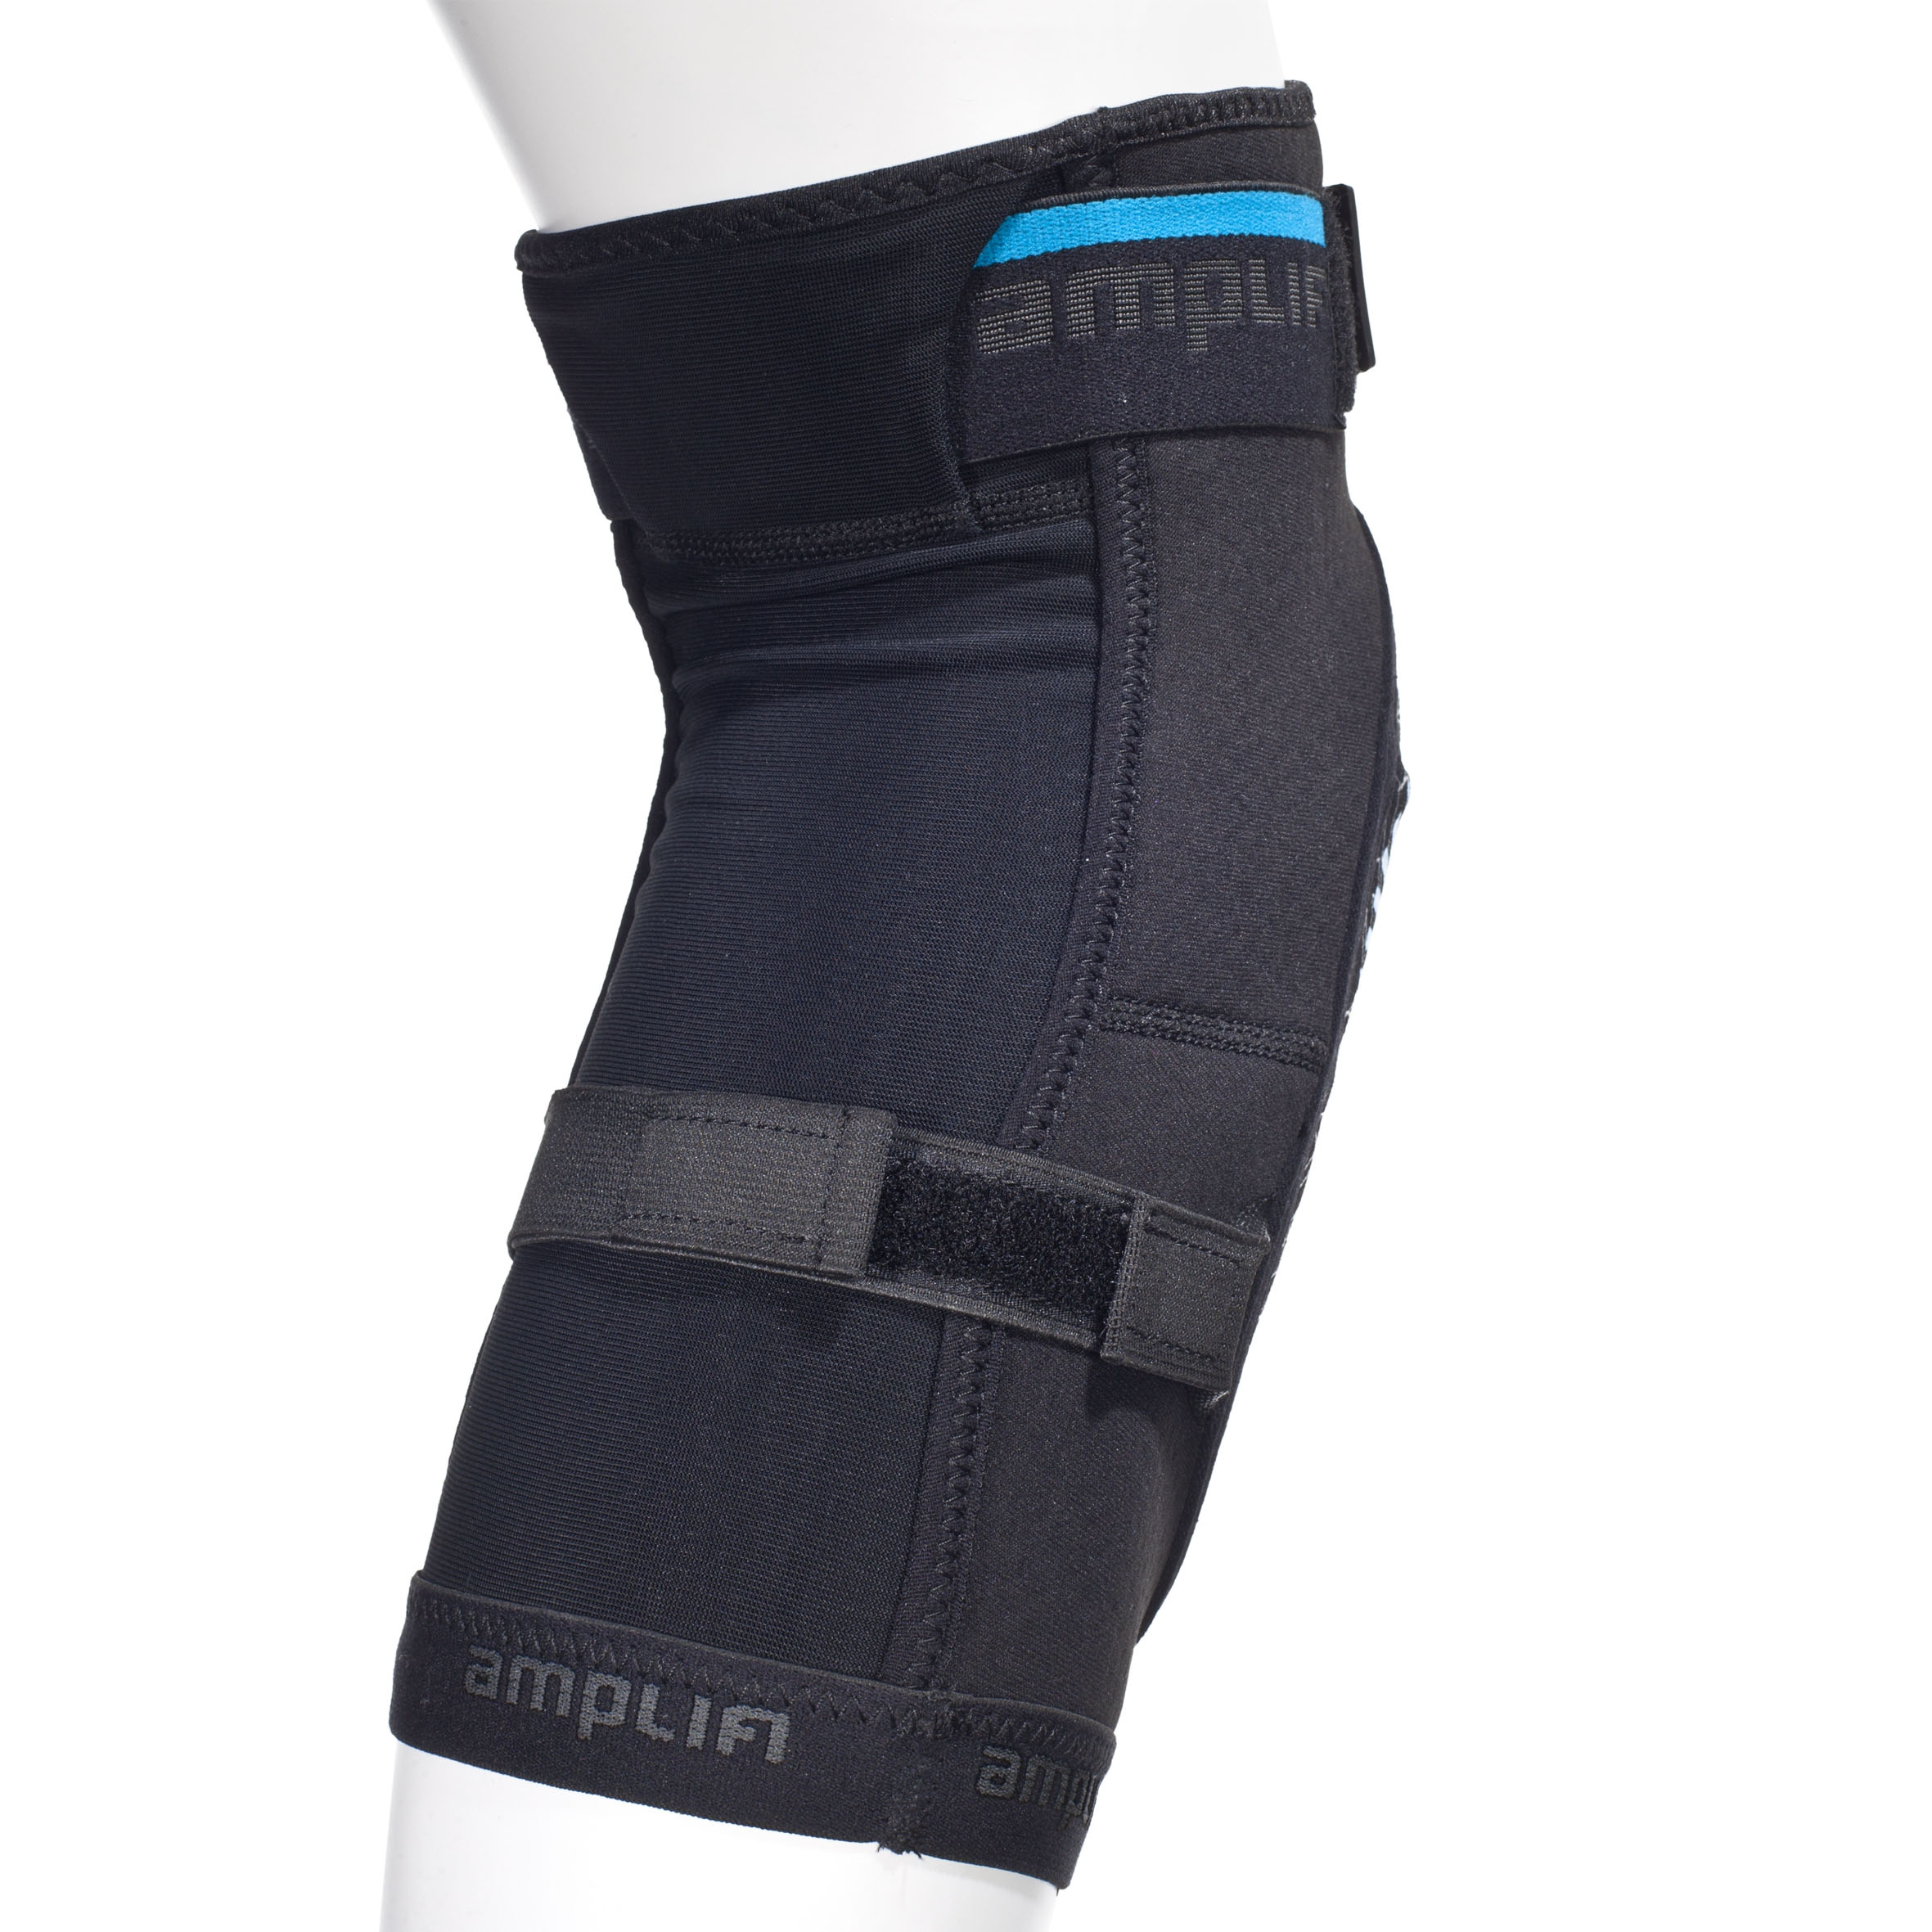 Amplifi Artik Knee Pad Limited